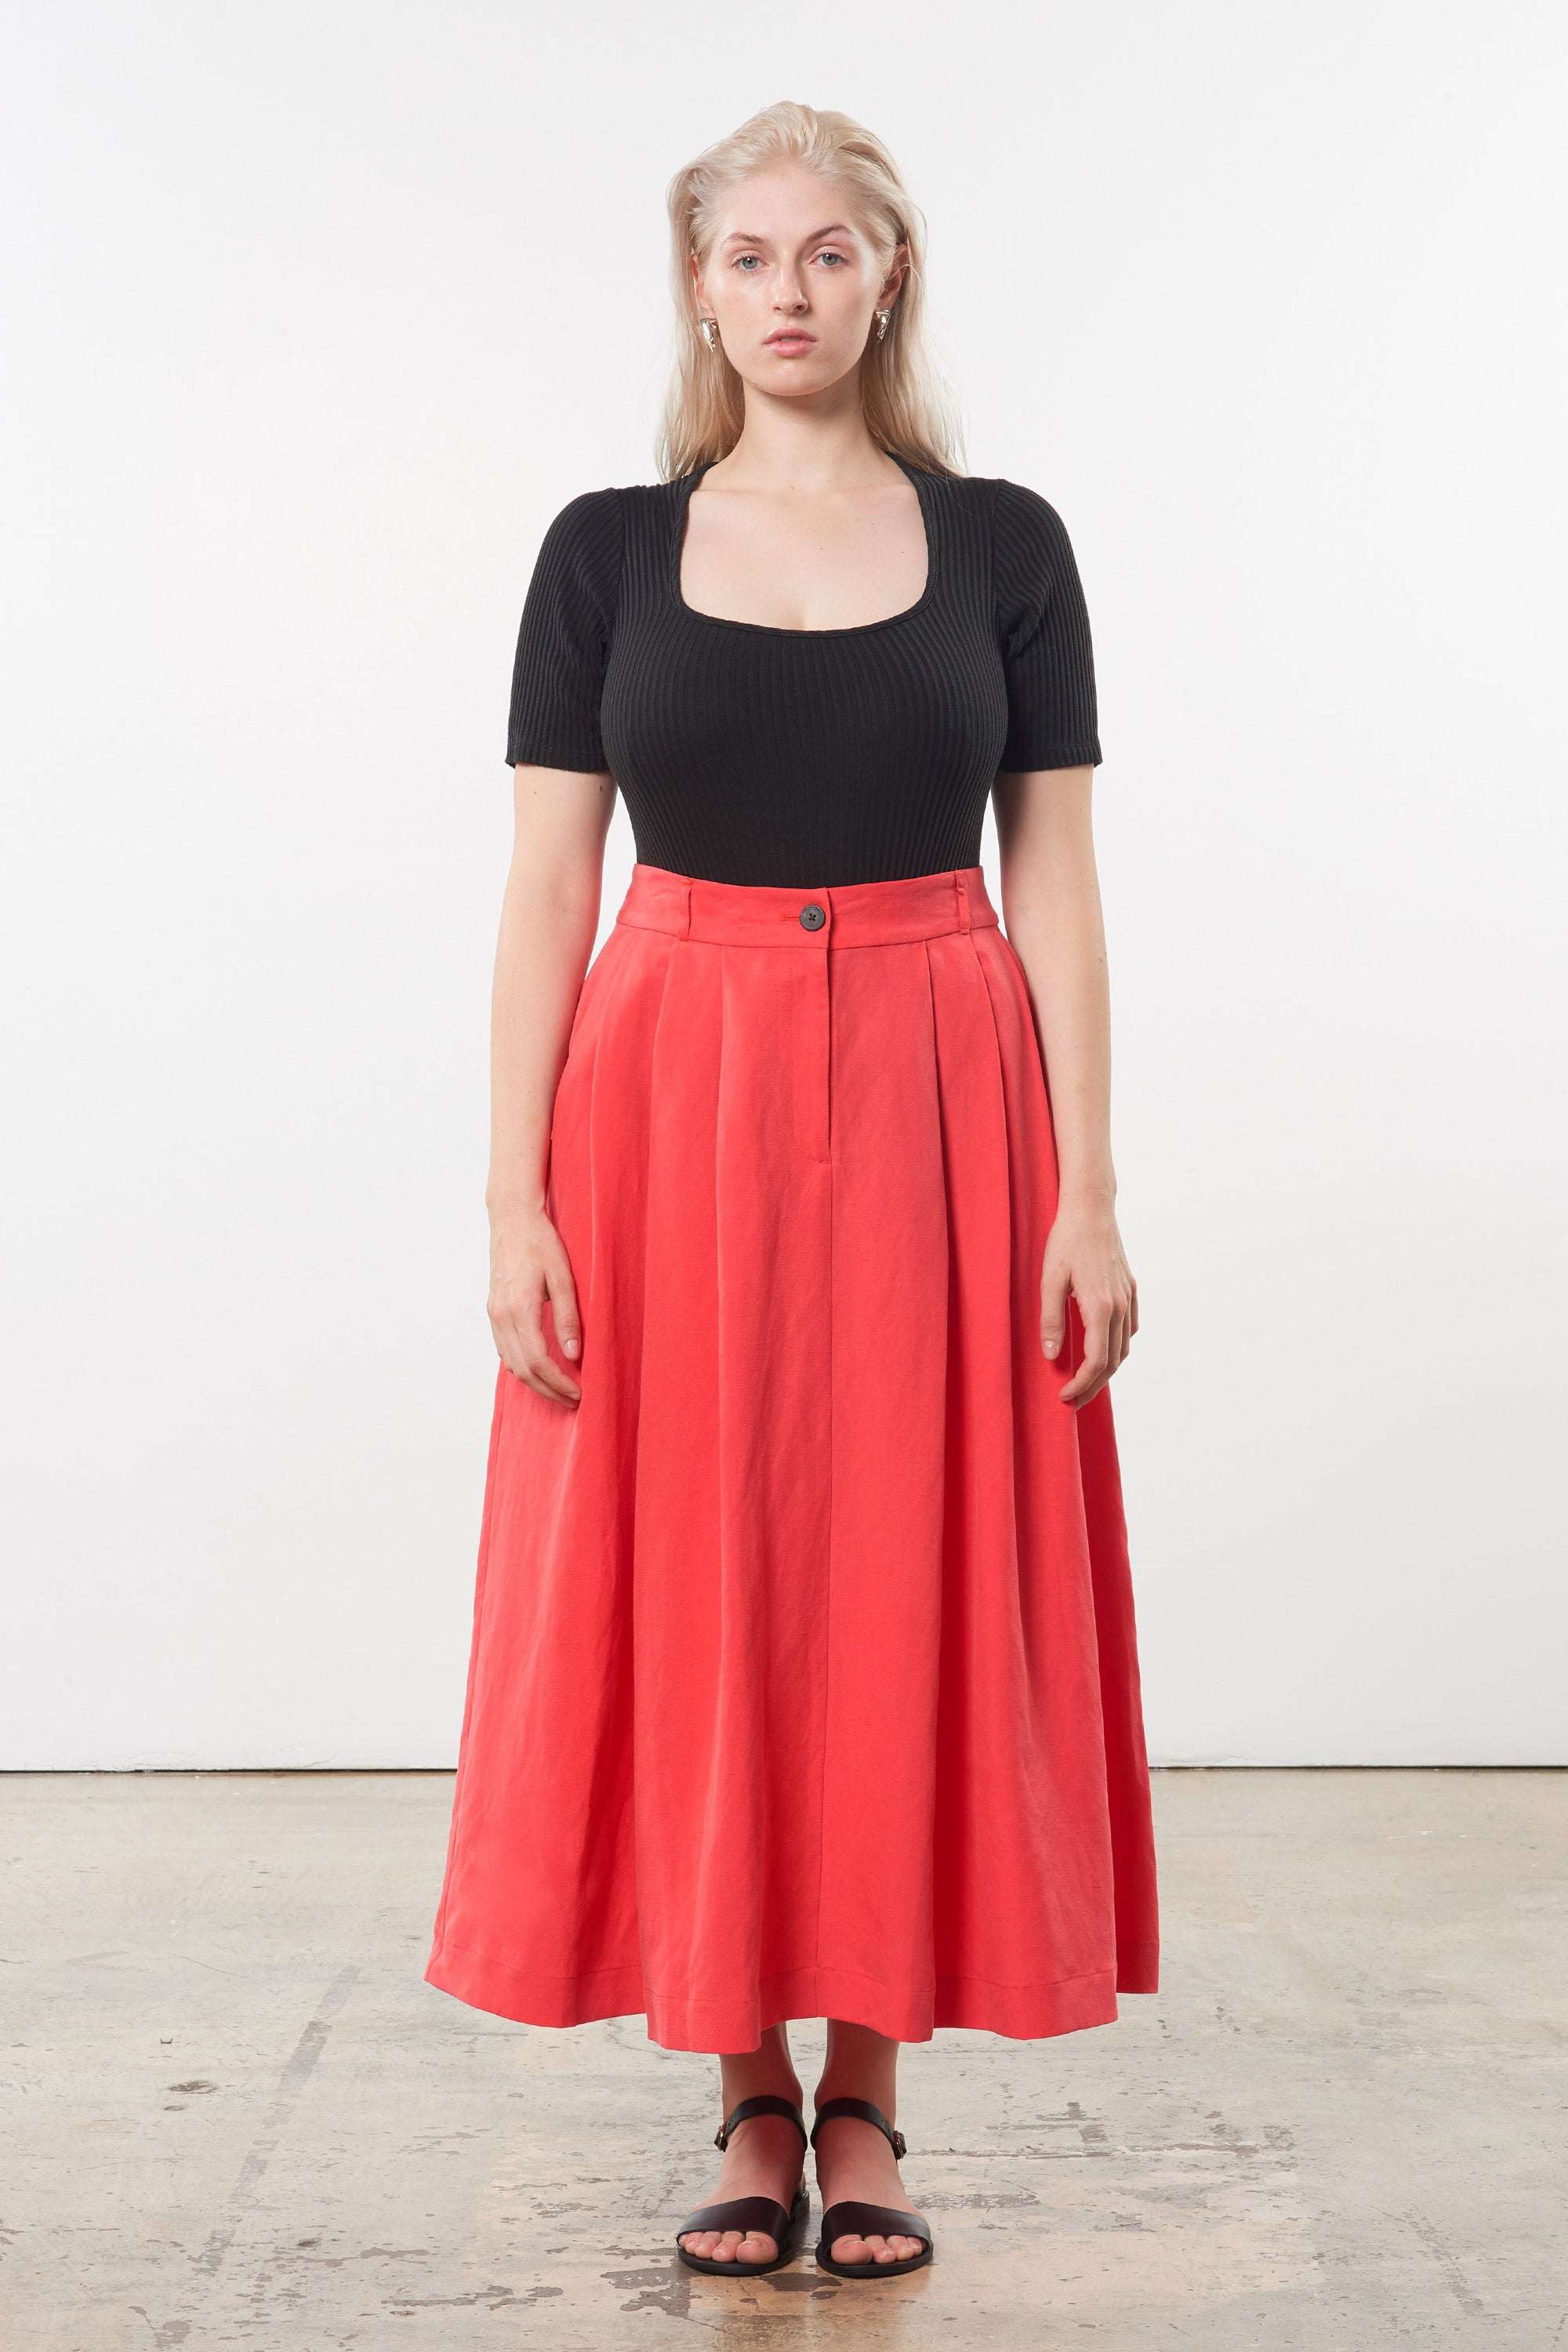 Mara Hoffman Extended Red Tulay Skirt in tencel lyocell and linen (front)